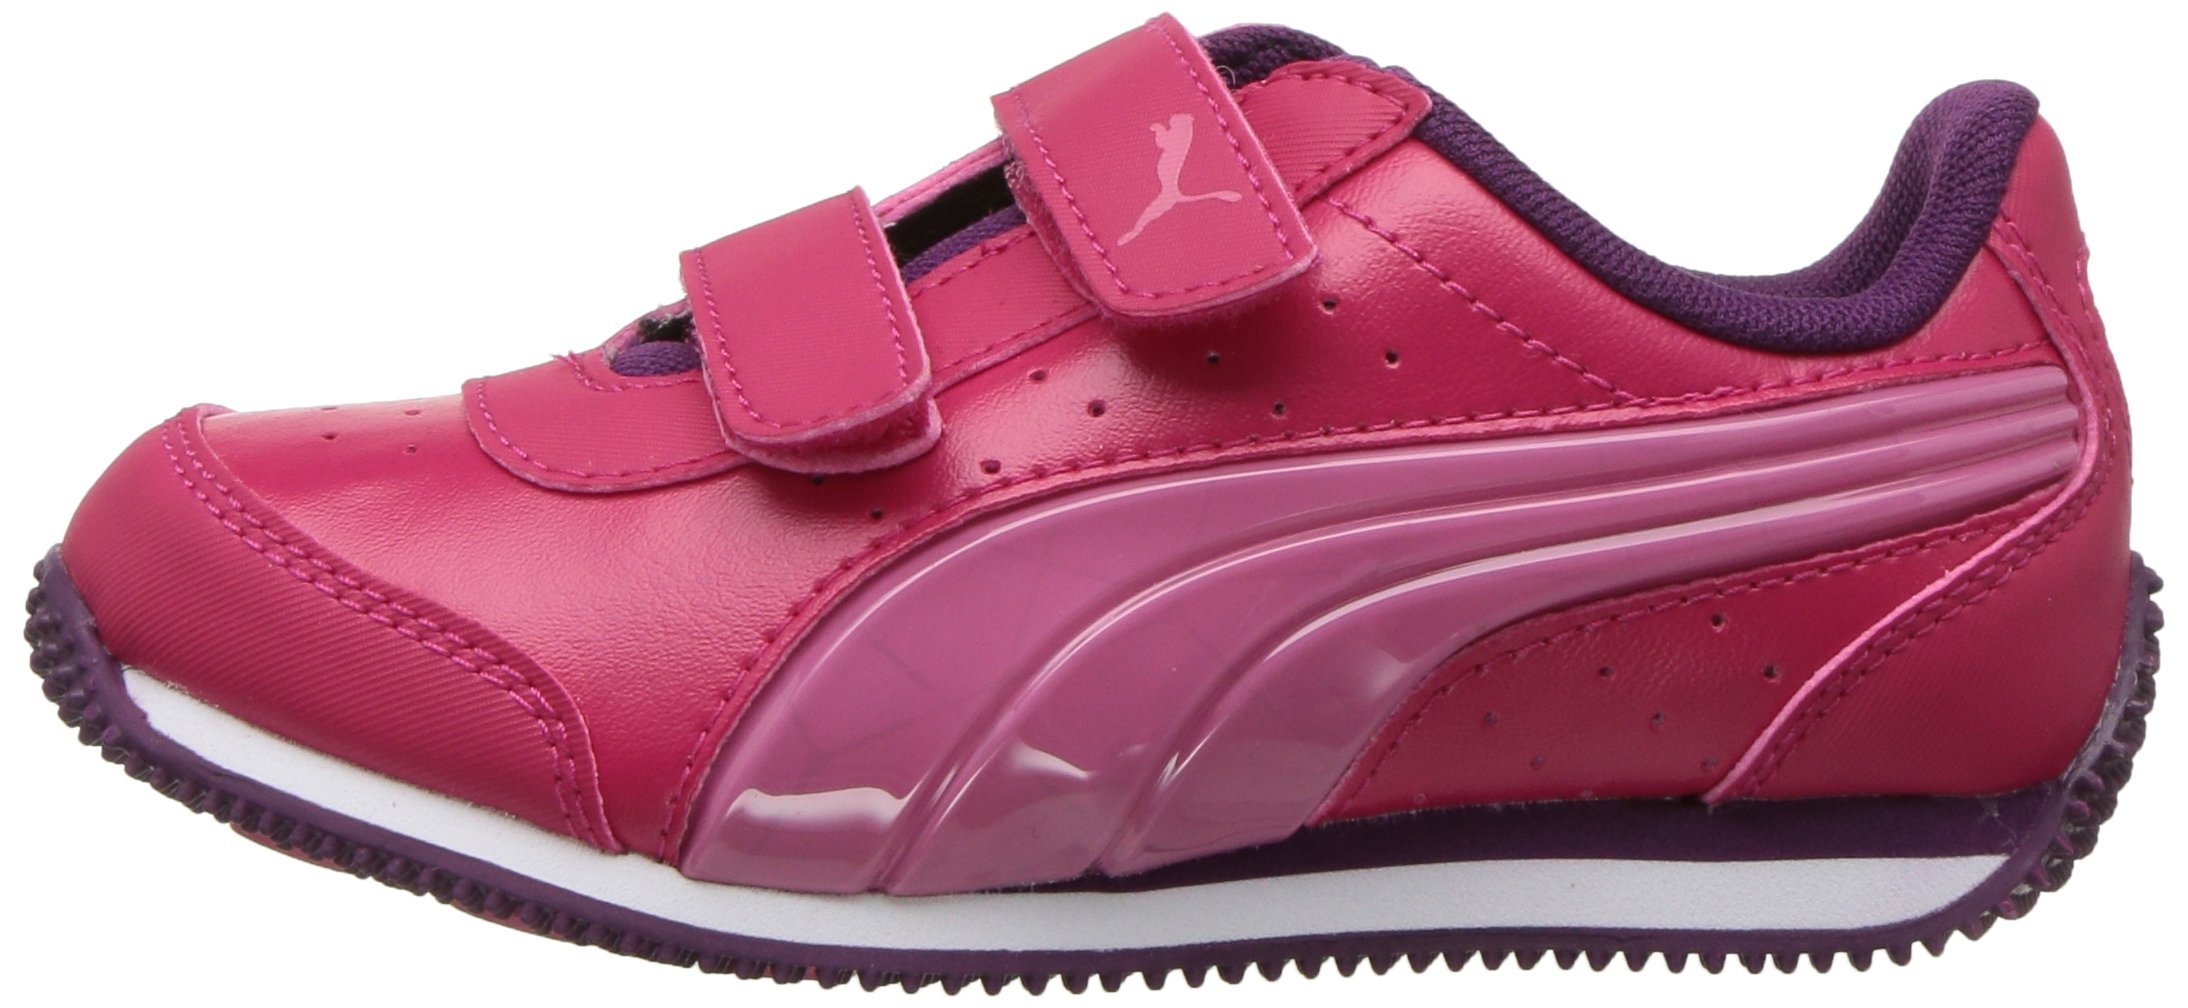 PUMA Baby Speed Lightup Power V Kids Sneaker, Love Potion-Rapture Rose, 5 M US Toddler by PUMA (Image #5)